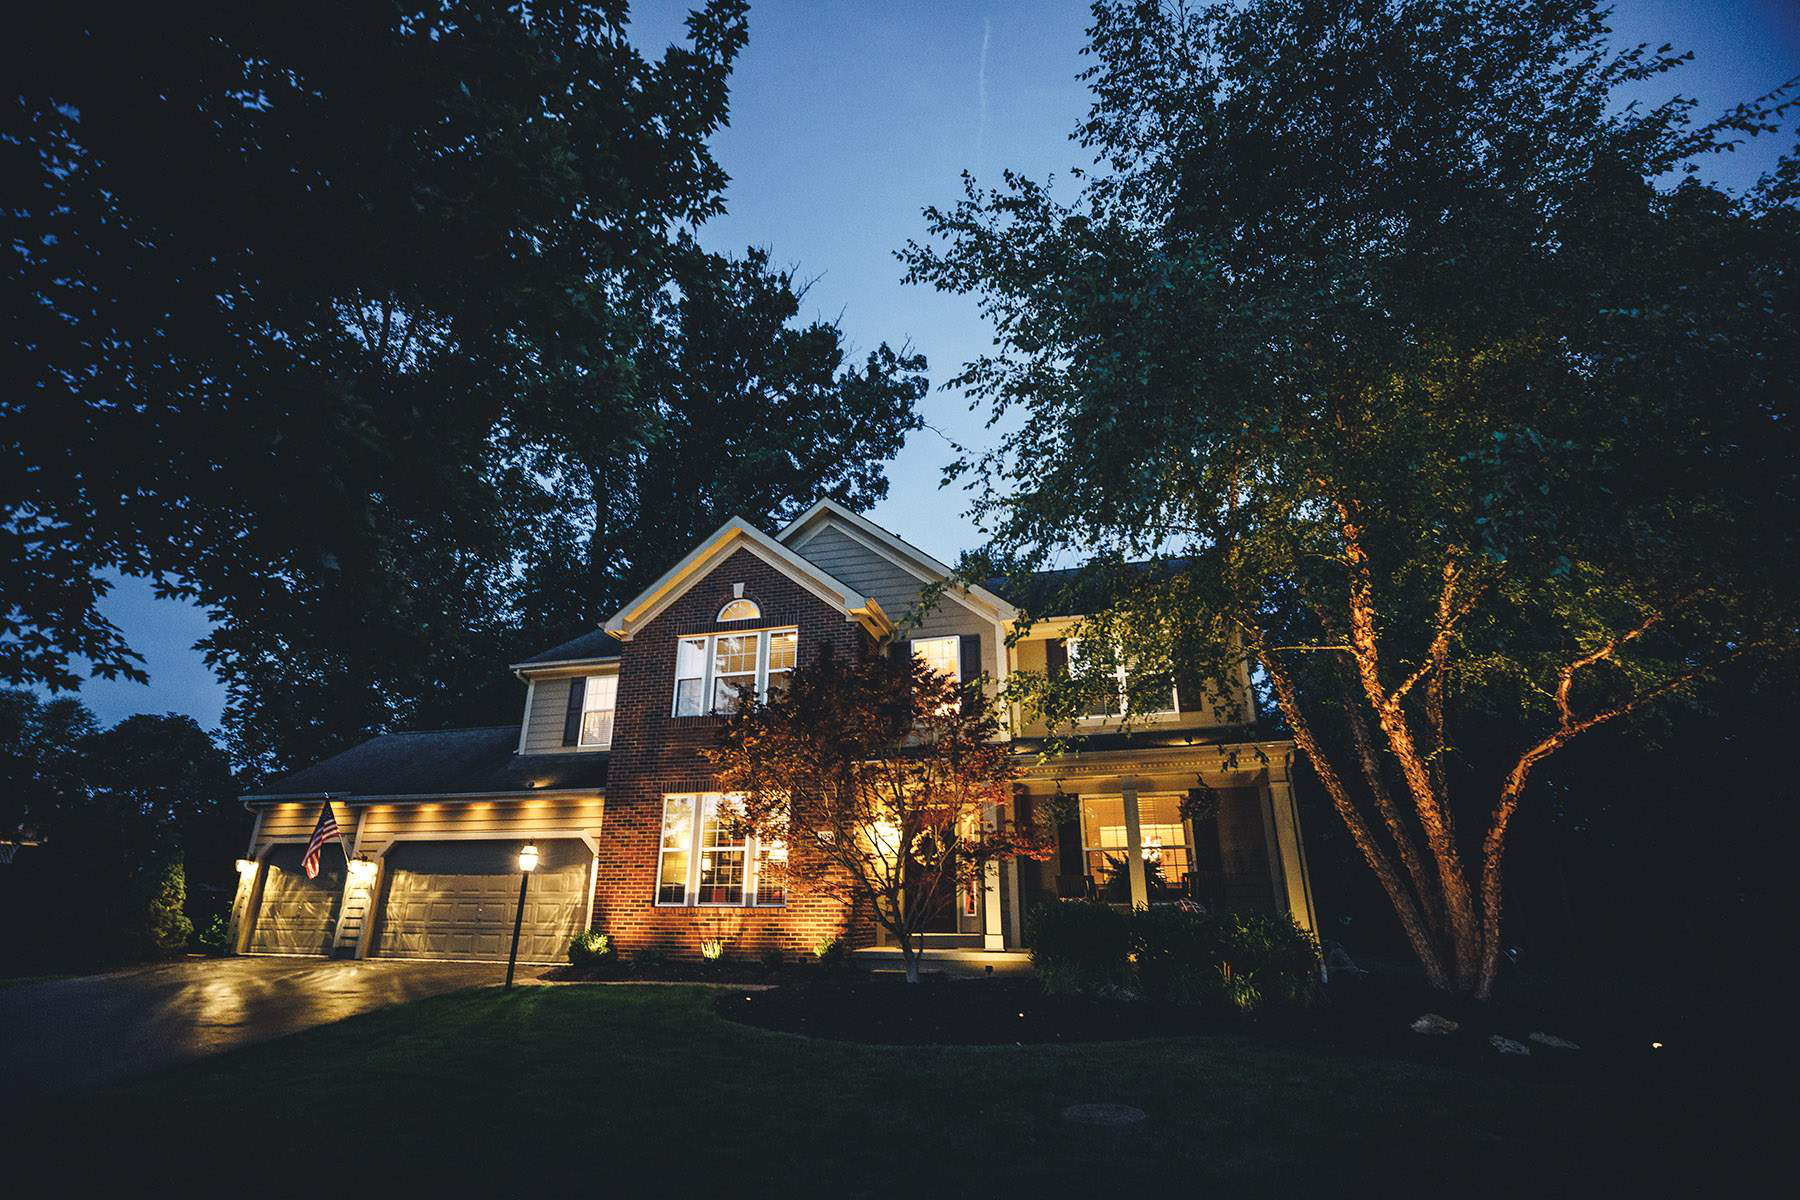 Outdoor Lighting Has Become A Must Have For Homeowners